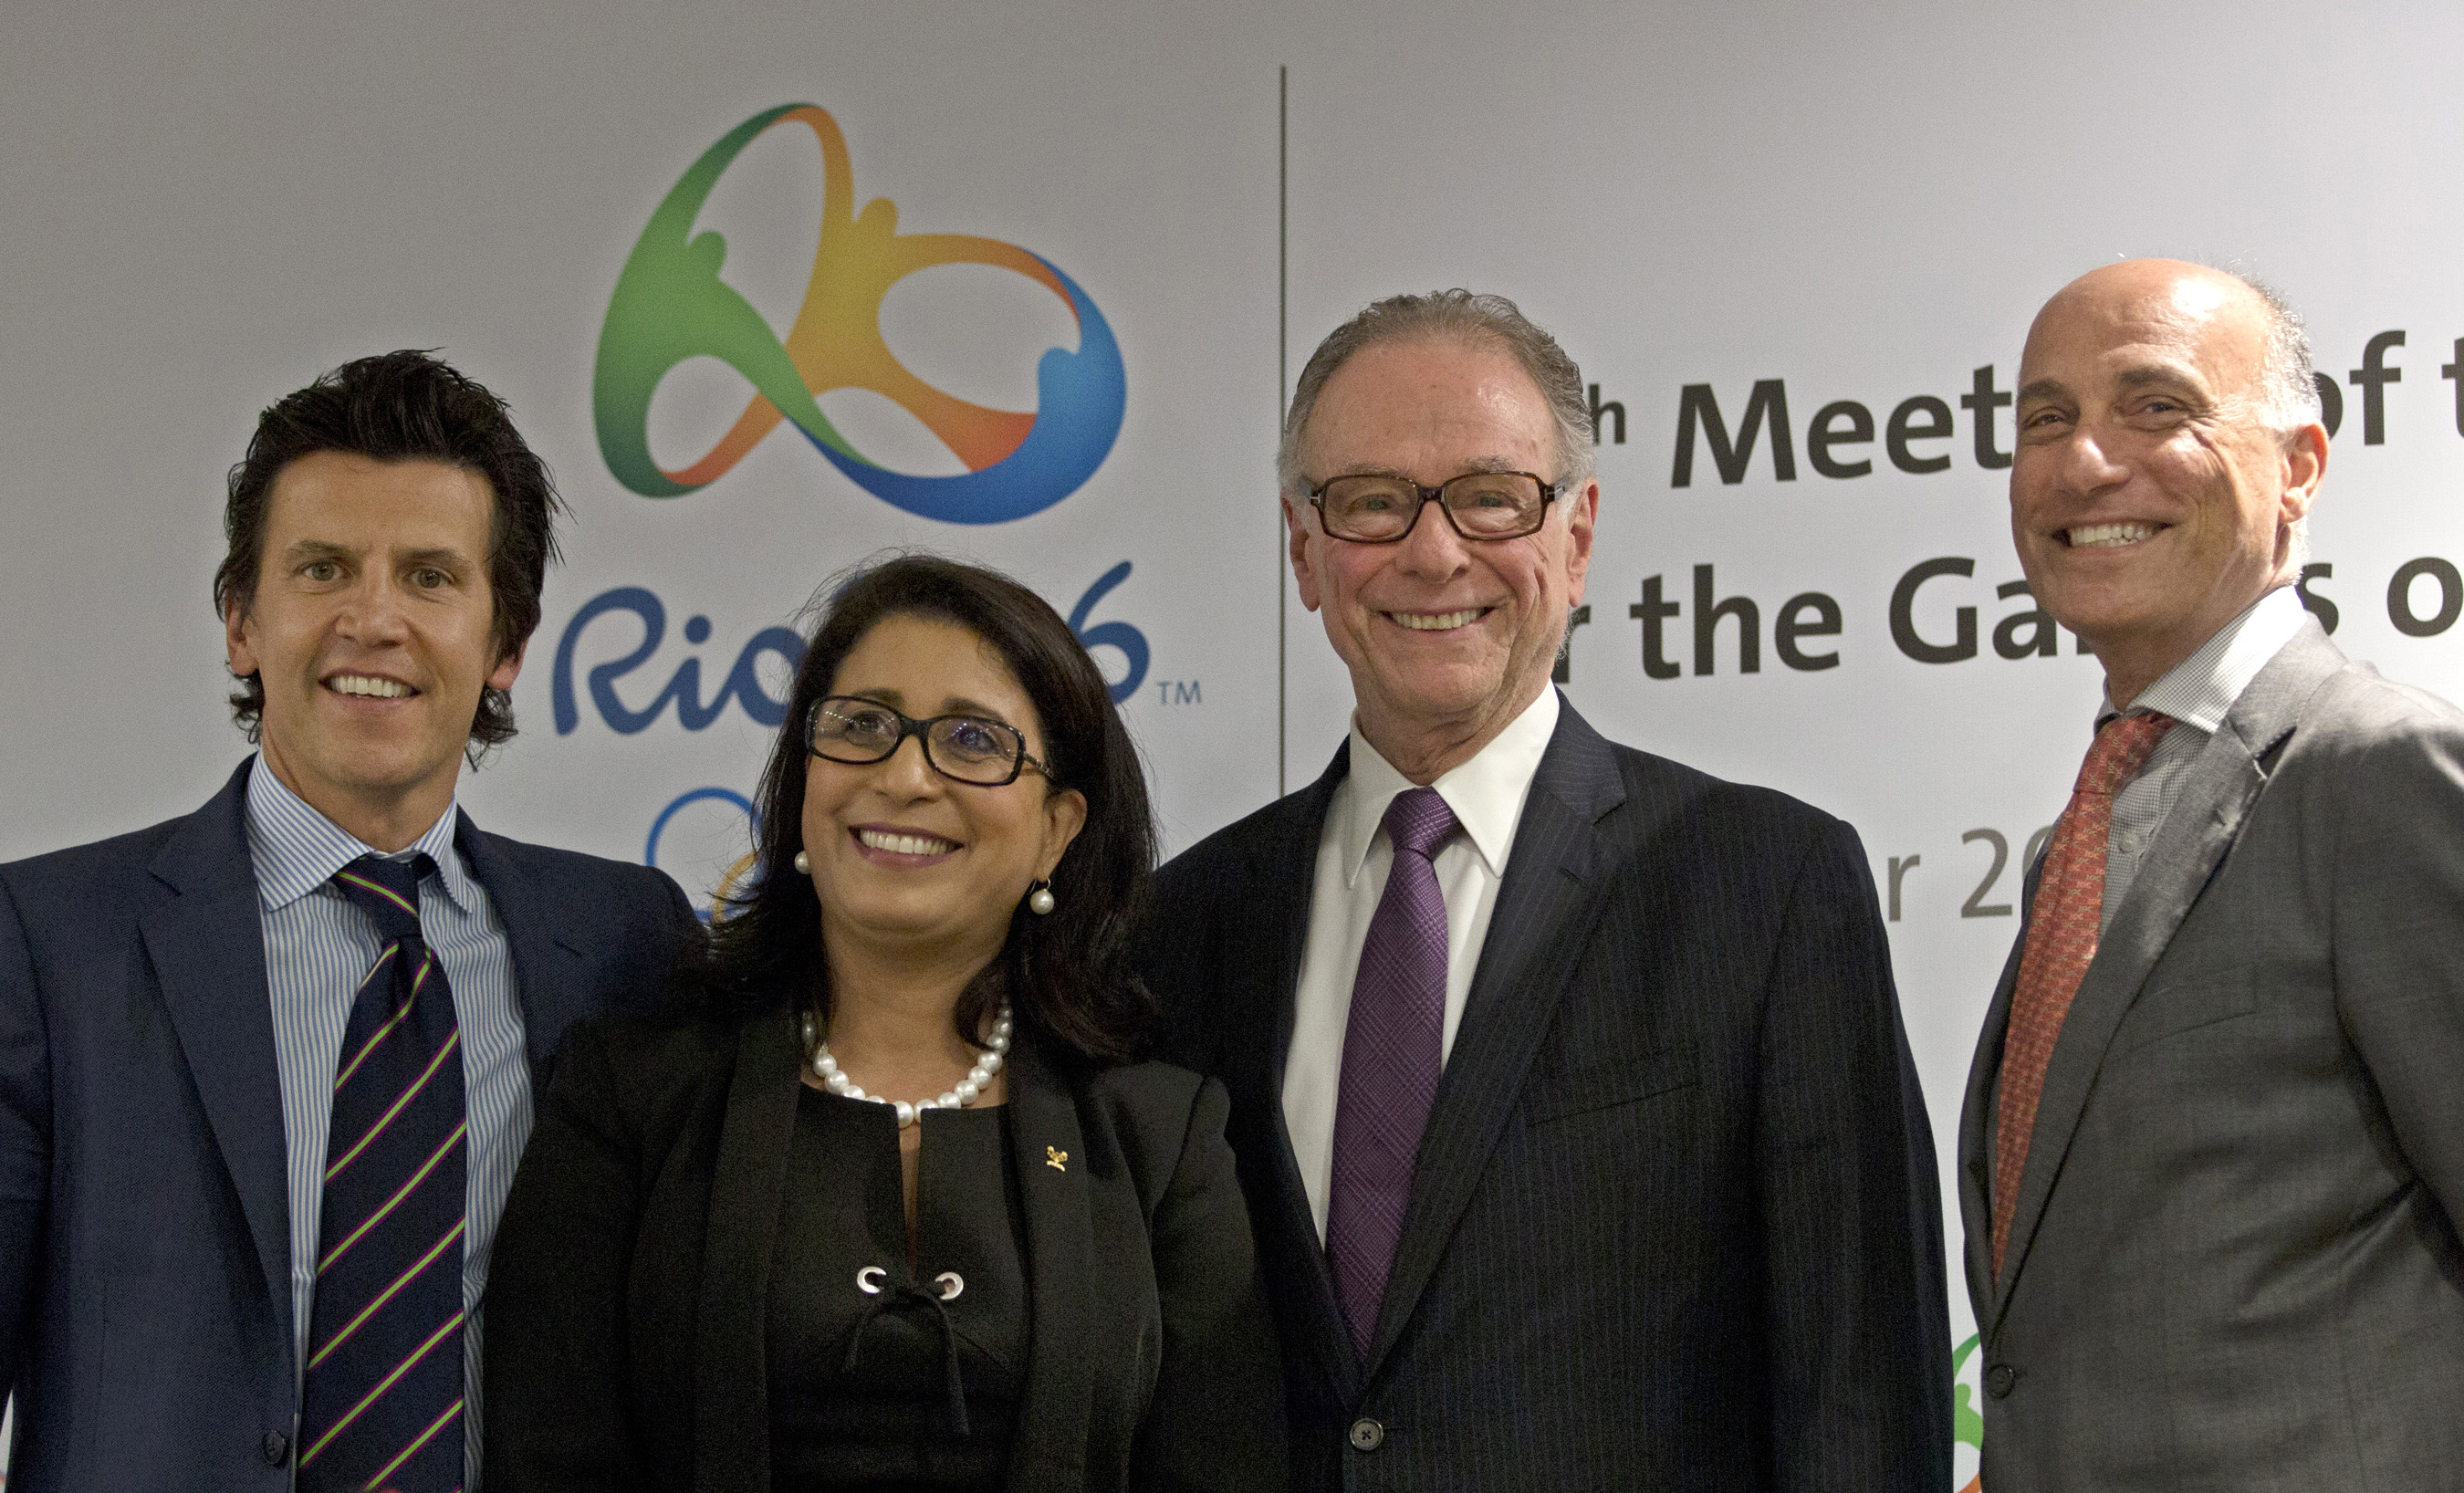 Olympic Games Executive Director Christophe Dubi, left, Nawal El Moutawakel, second left, head of the International Olympic Committee's evaluation commission, Brazil Olympic Committee President Carlos Arthur Nuzman, second right, and Rio 2016 Committee Ch